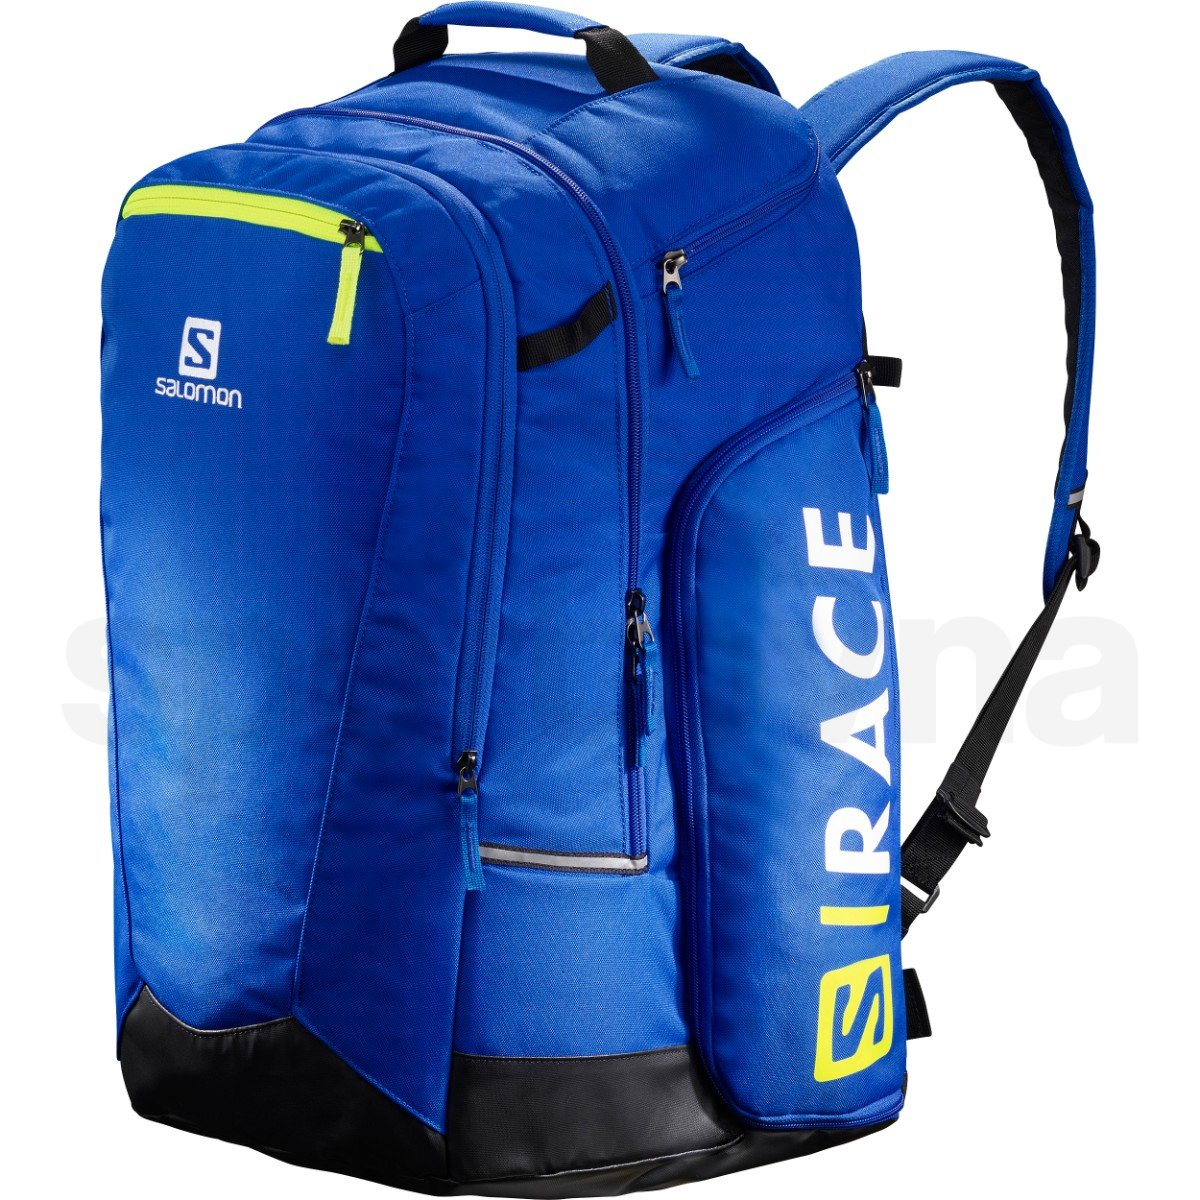 LC1169500_0_GHO_U_extend_go_to_snow_gearbag_race_blue.jpg.cq5dam.web.1200.1200